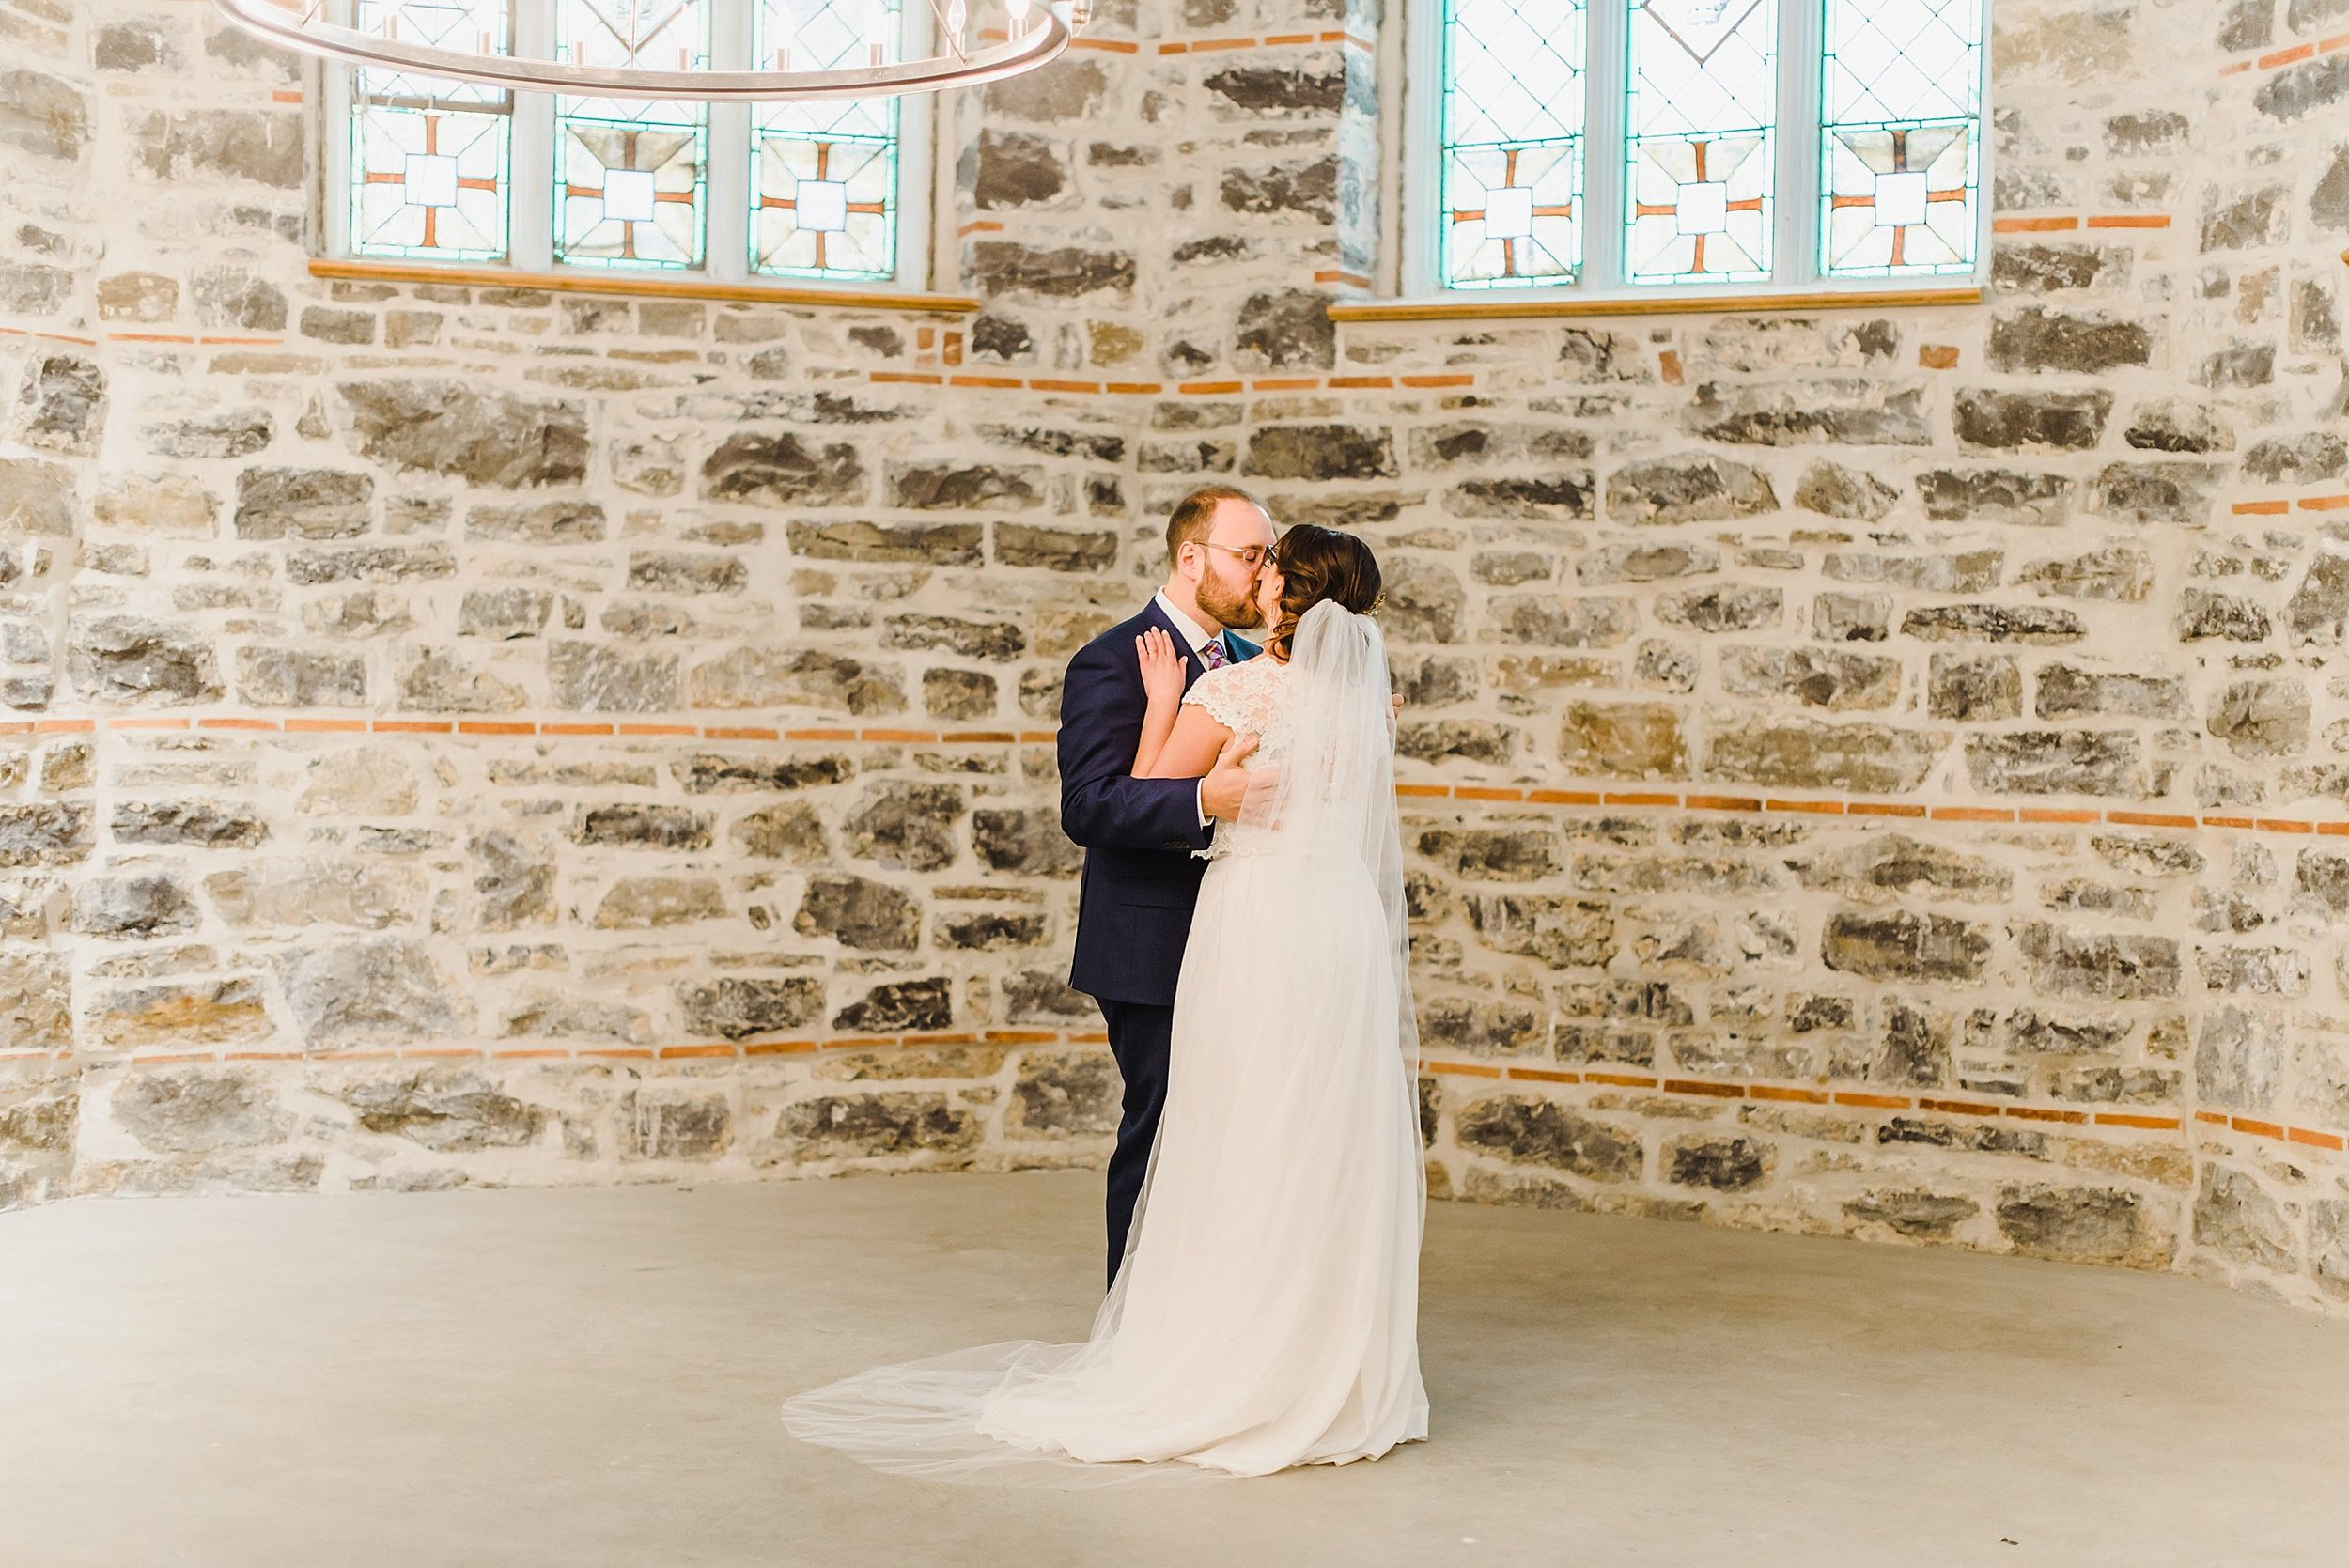 light airy indie fine art ottawa wedding photographer | Ali and Batoul Photography_0054.jpg